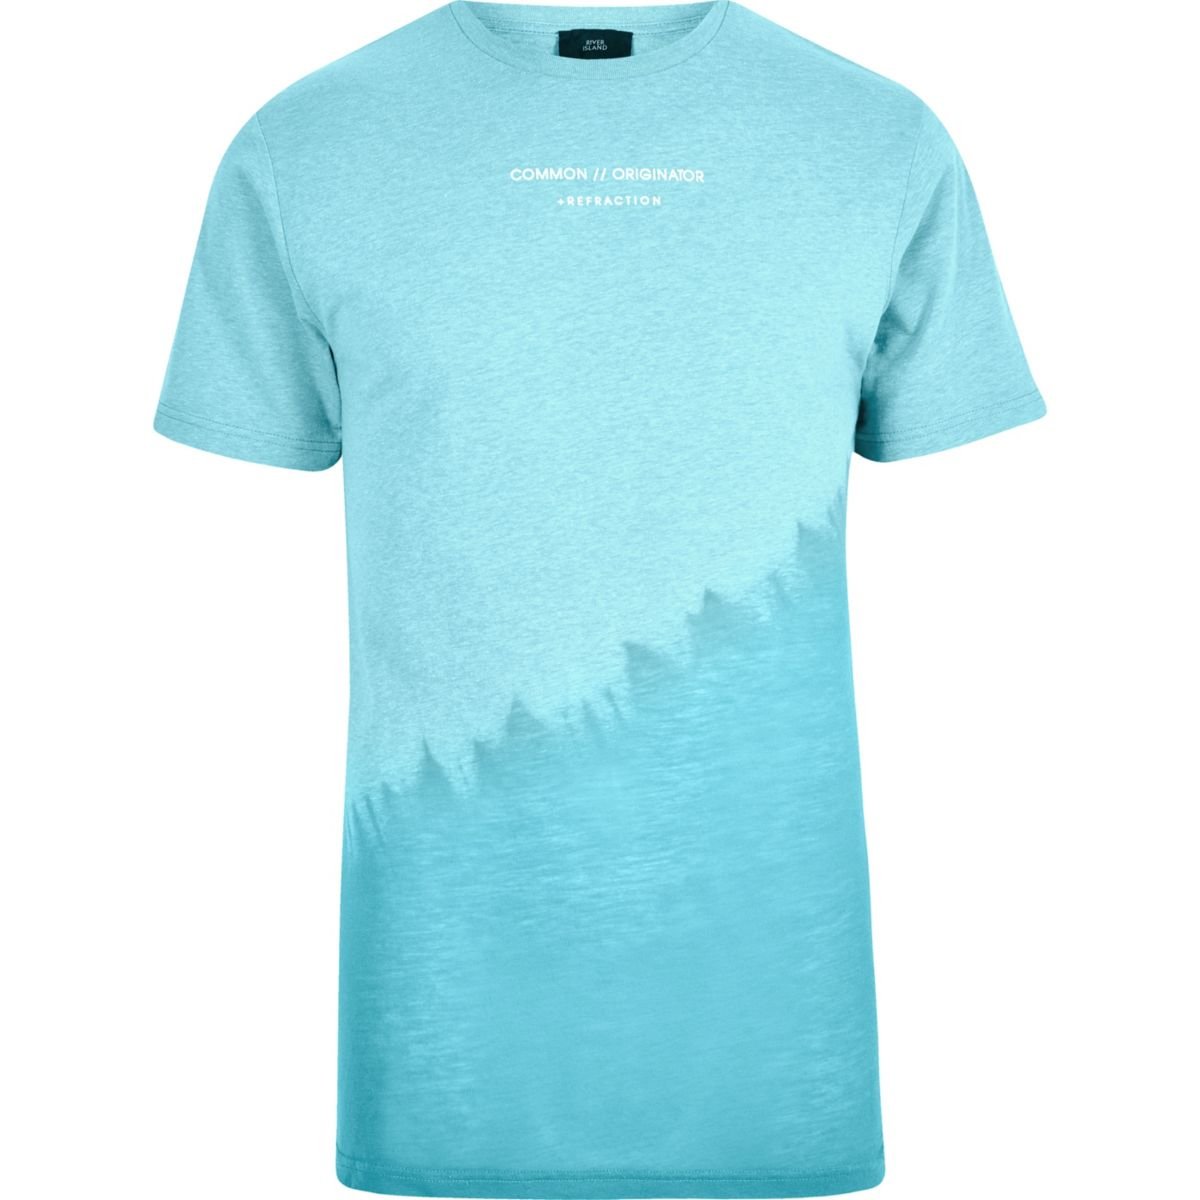 Blue slanted tie dye crew neck T-shirt